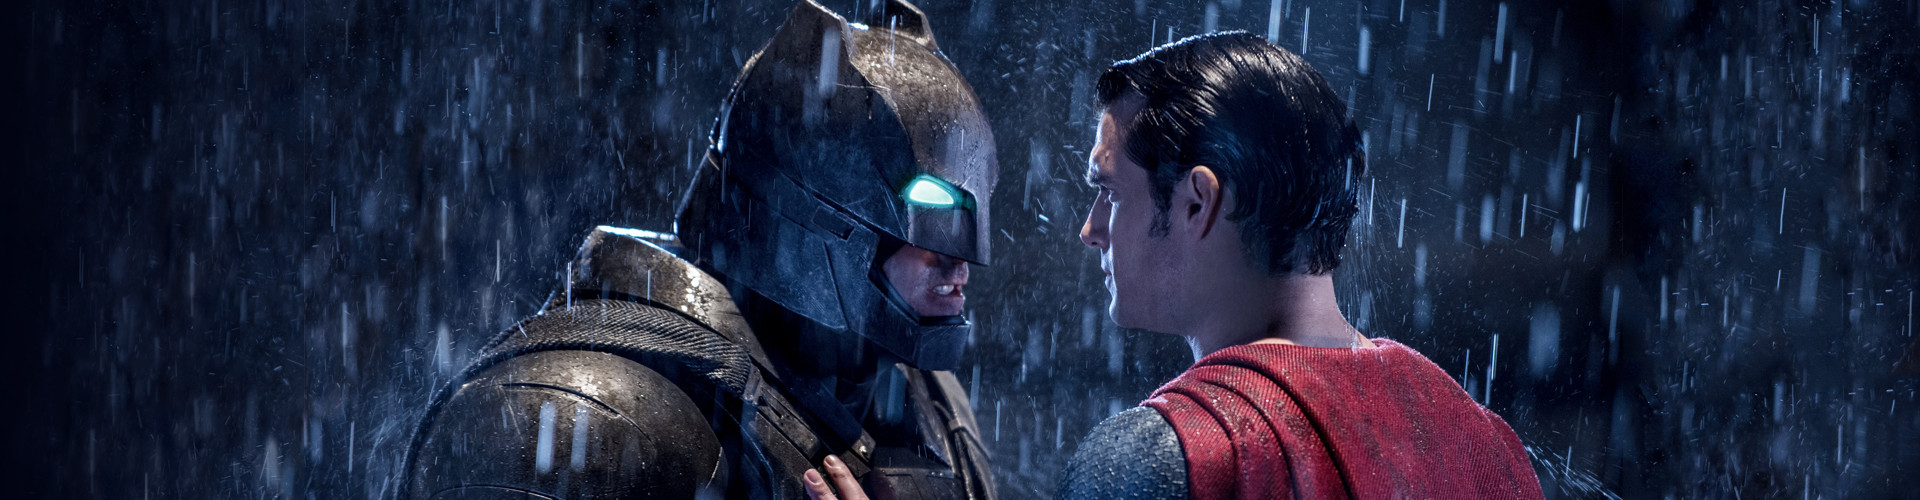 batman-superman-easter-eggs-header.jpg